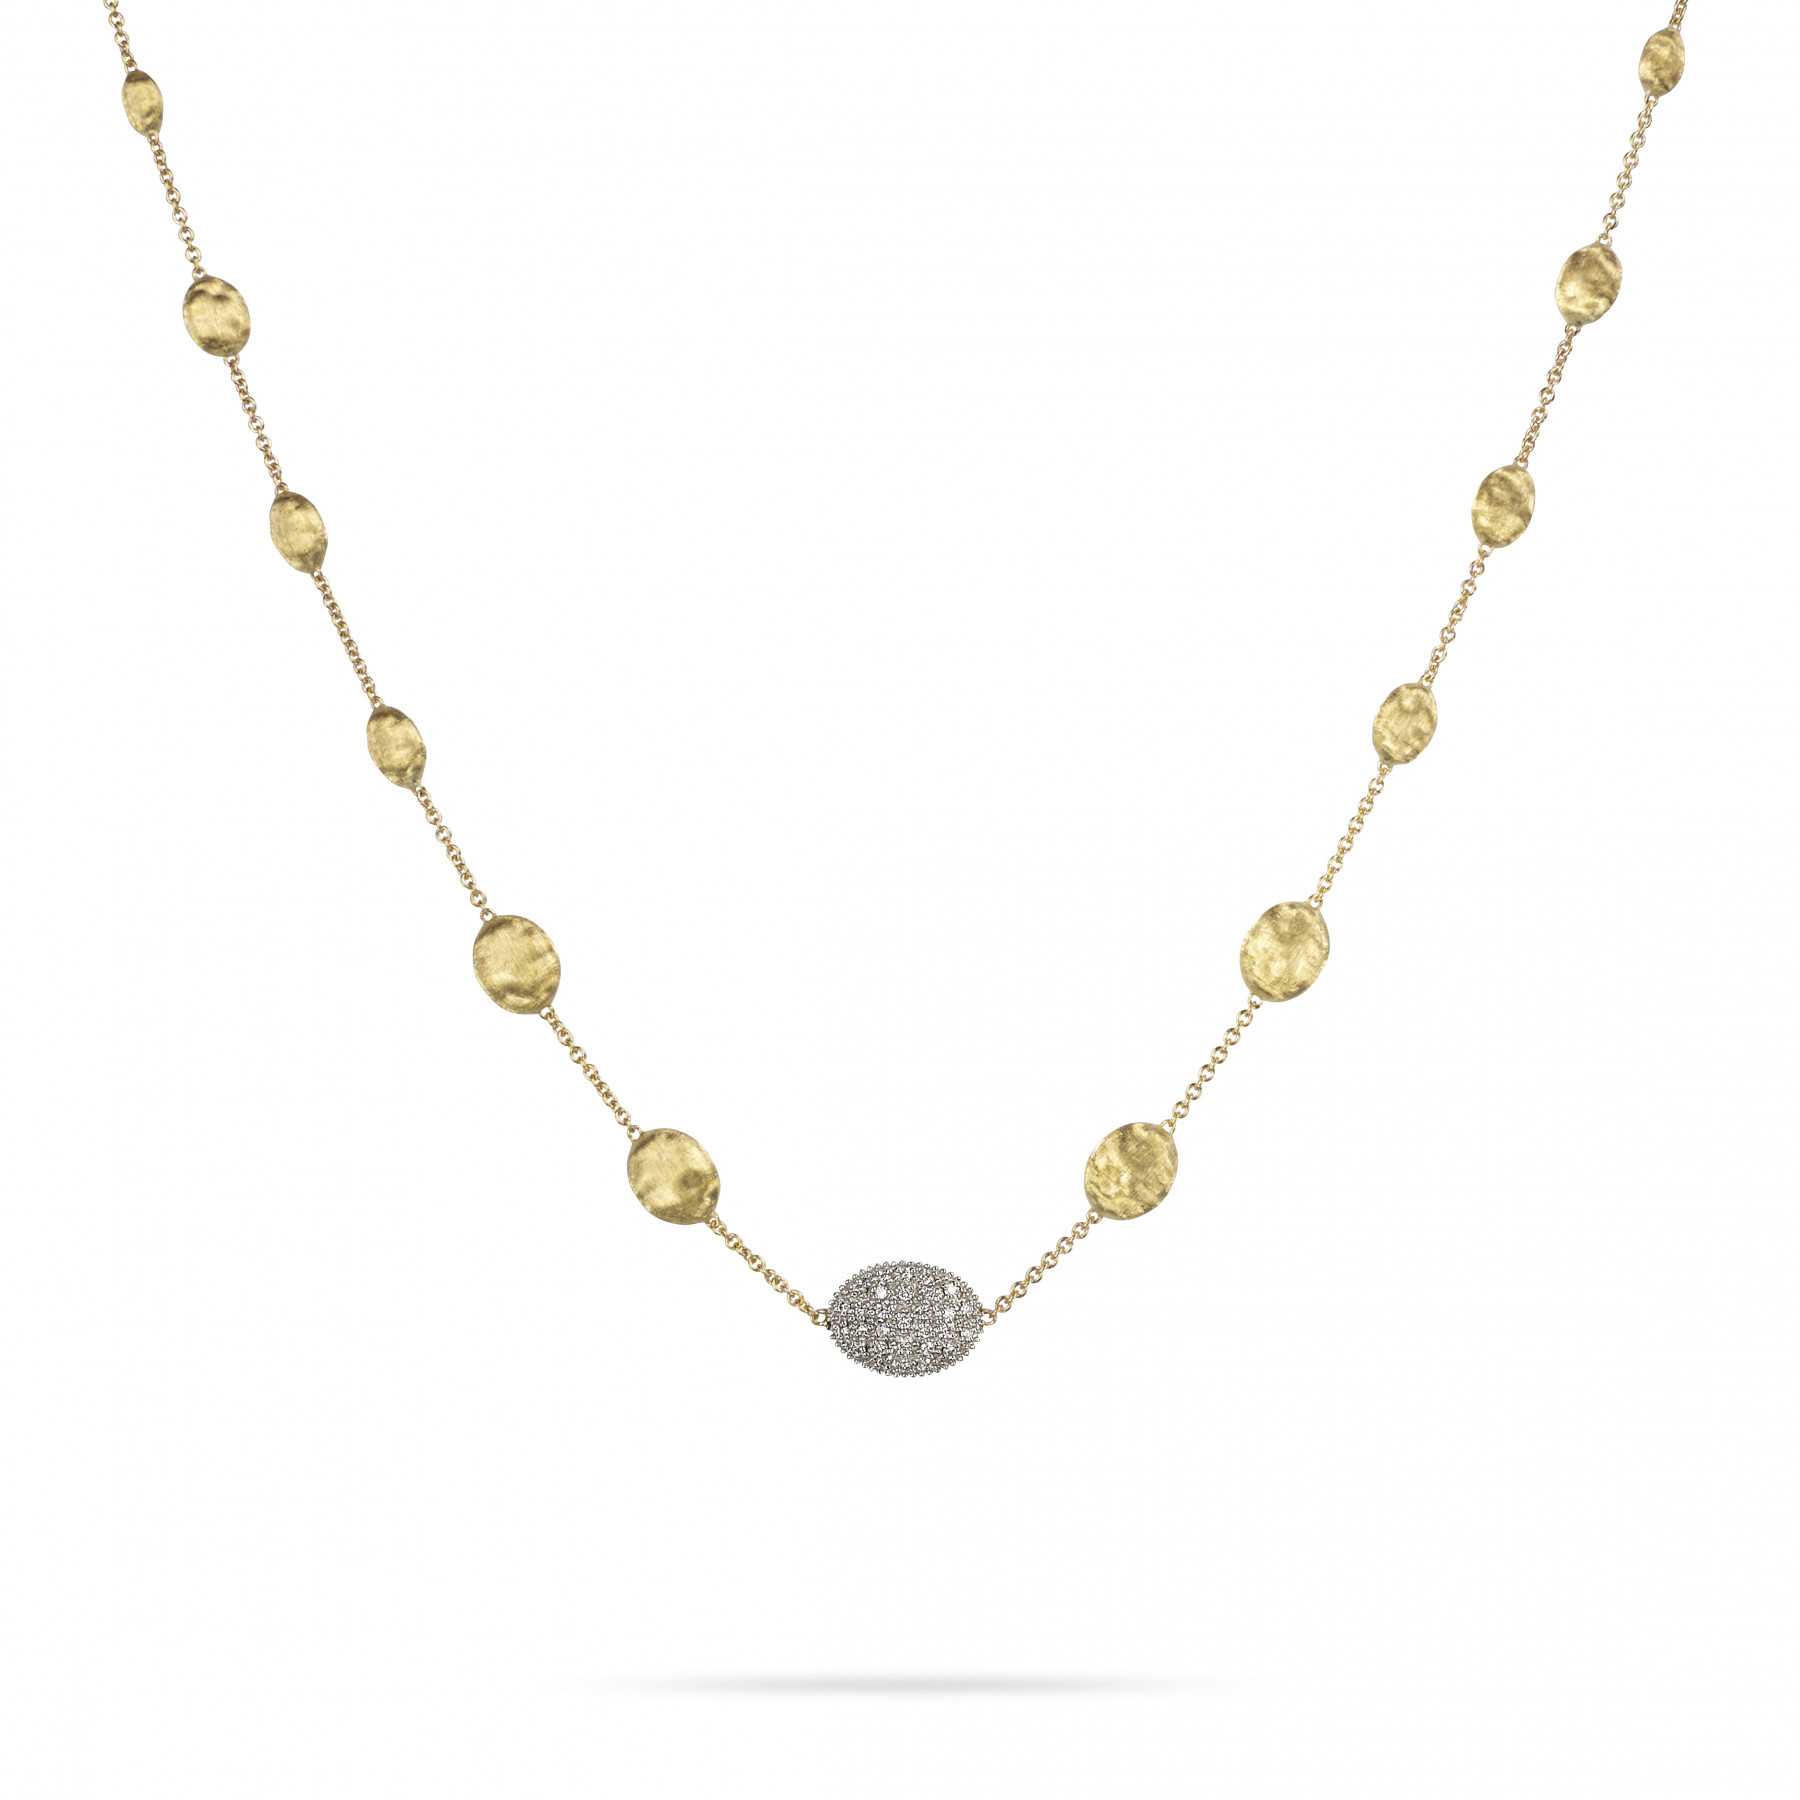 Marco Bicego Siviglia Yellow Gold with 1 Pave Station Link Necklace 18""